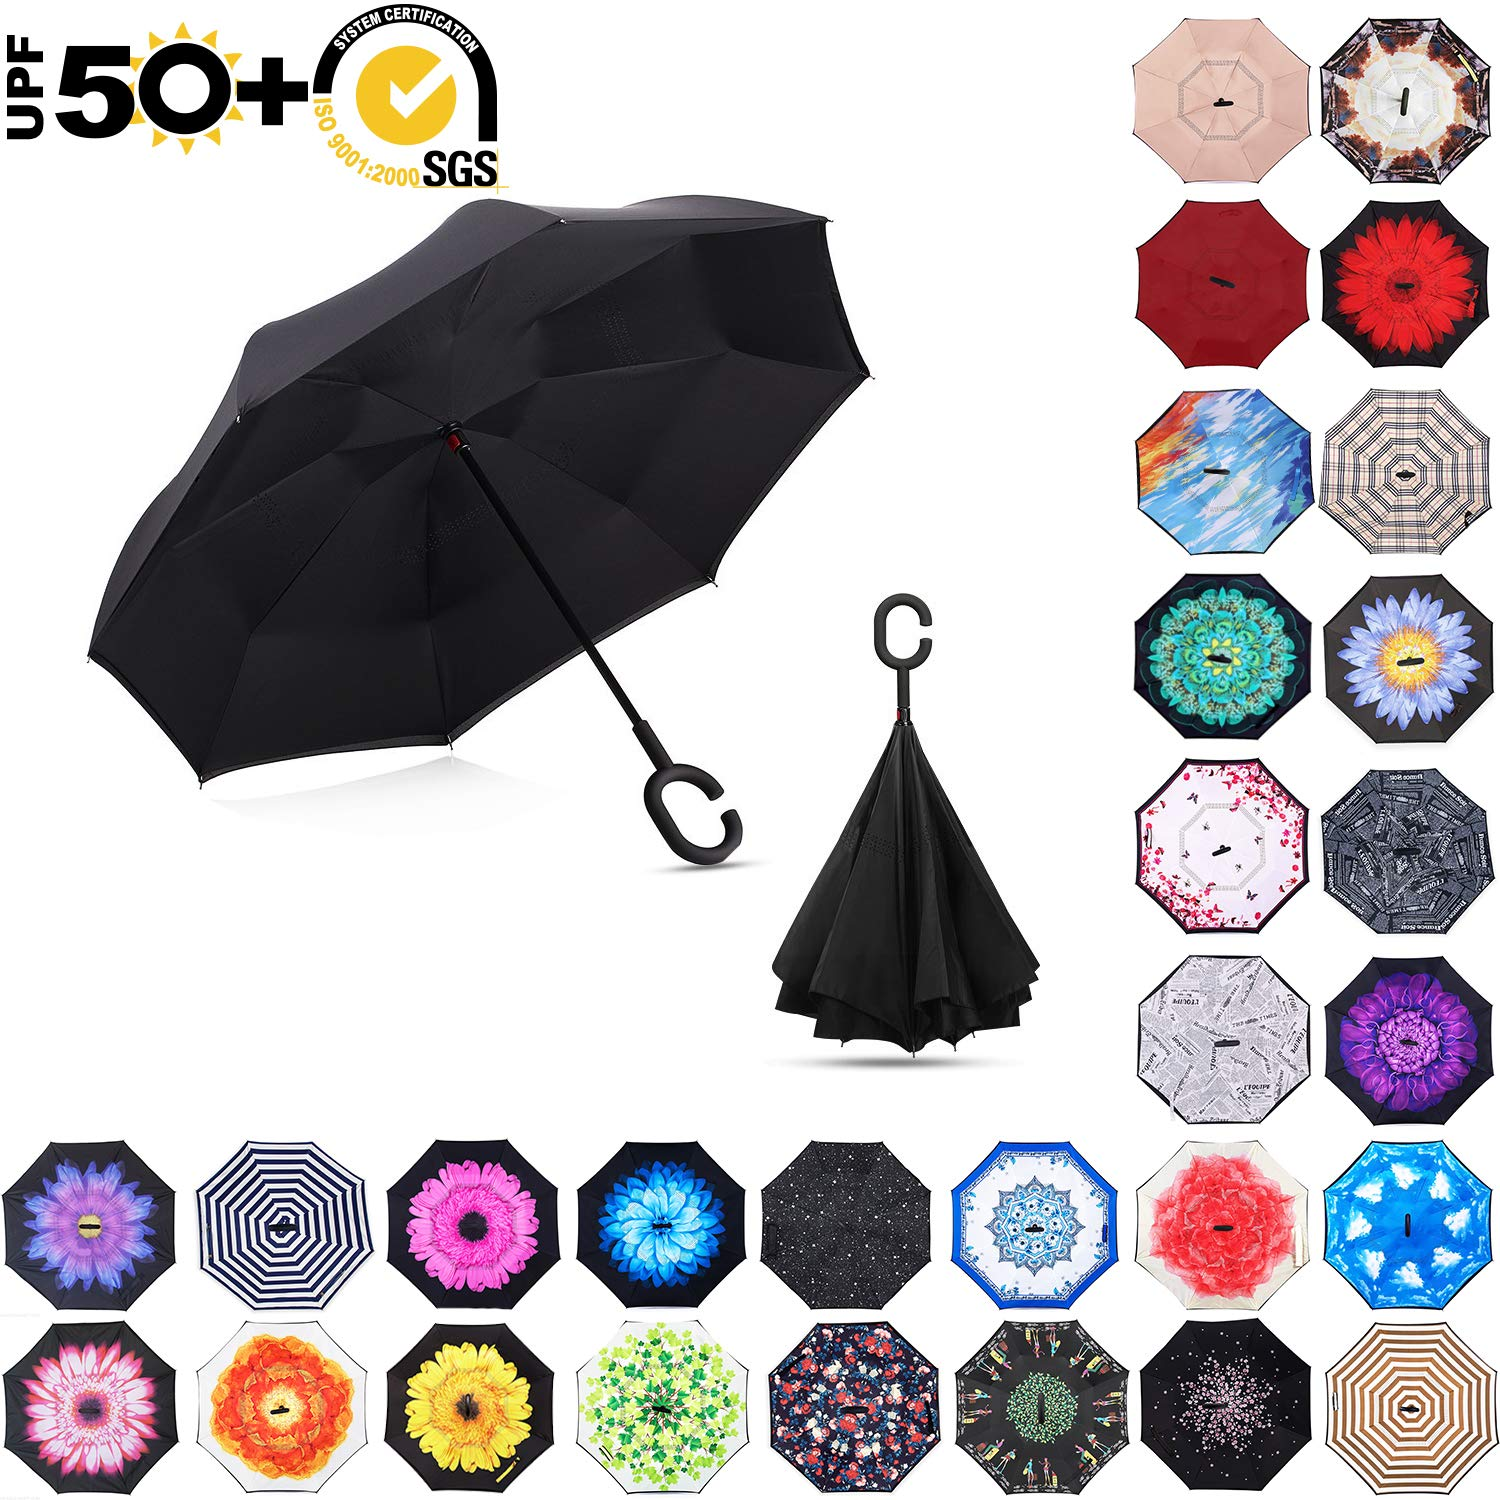 MASTERCANOPY Inverted Umbrella,Double Layer Reverse Windproof Teflon Repellent Umbrella for Car and Outdoor Use, UPF 50+ Big Stick Umbrella with C-Shaped Handle and Carrying Bag, Black by MasterCanopy